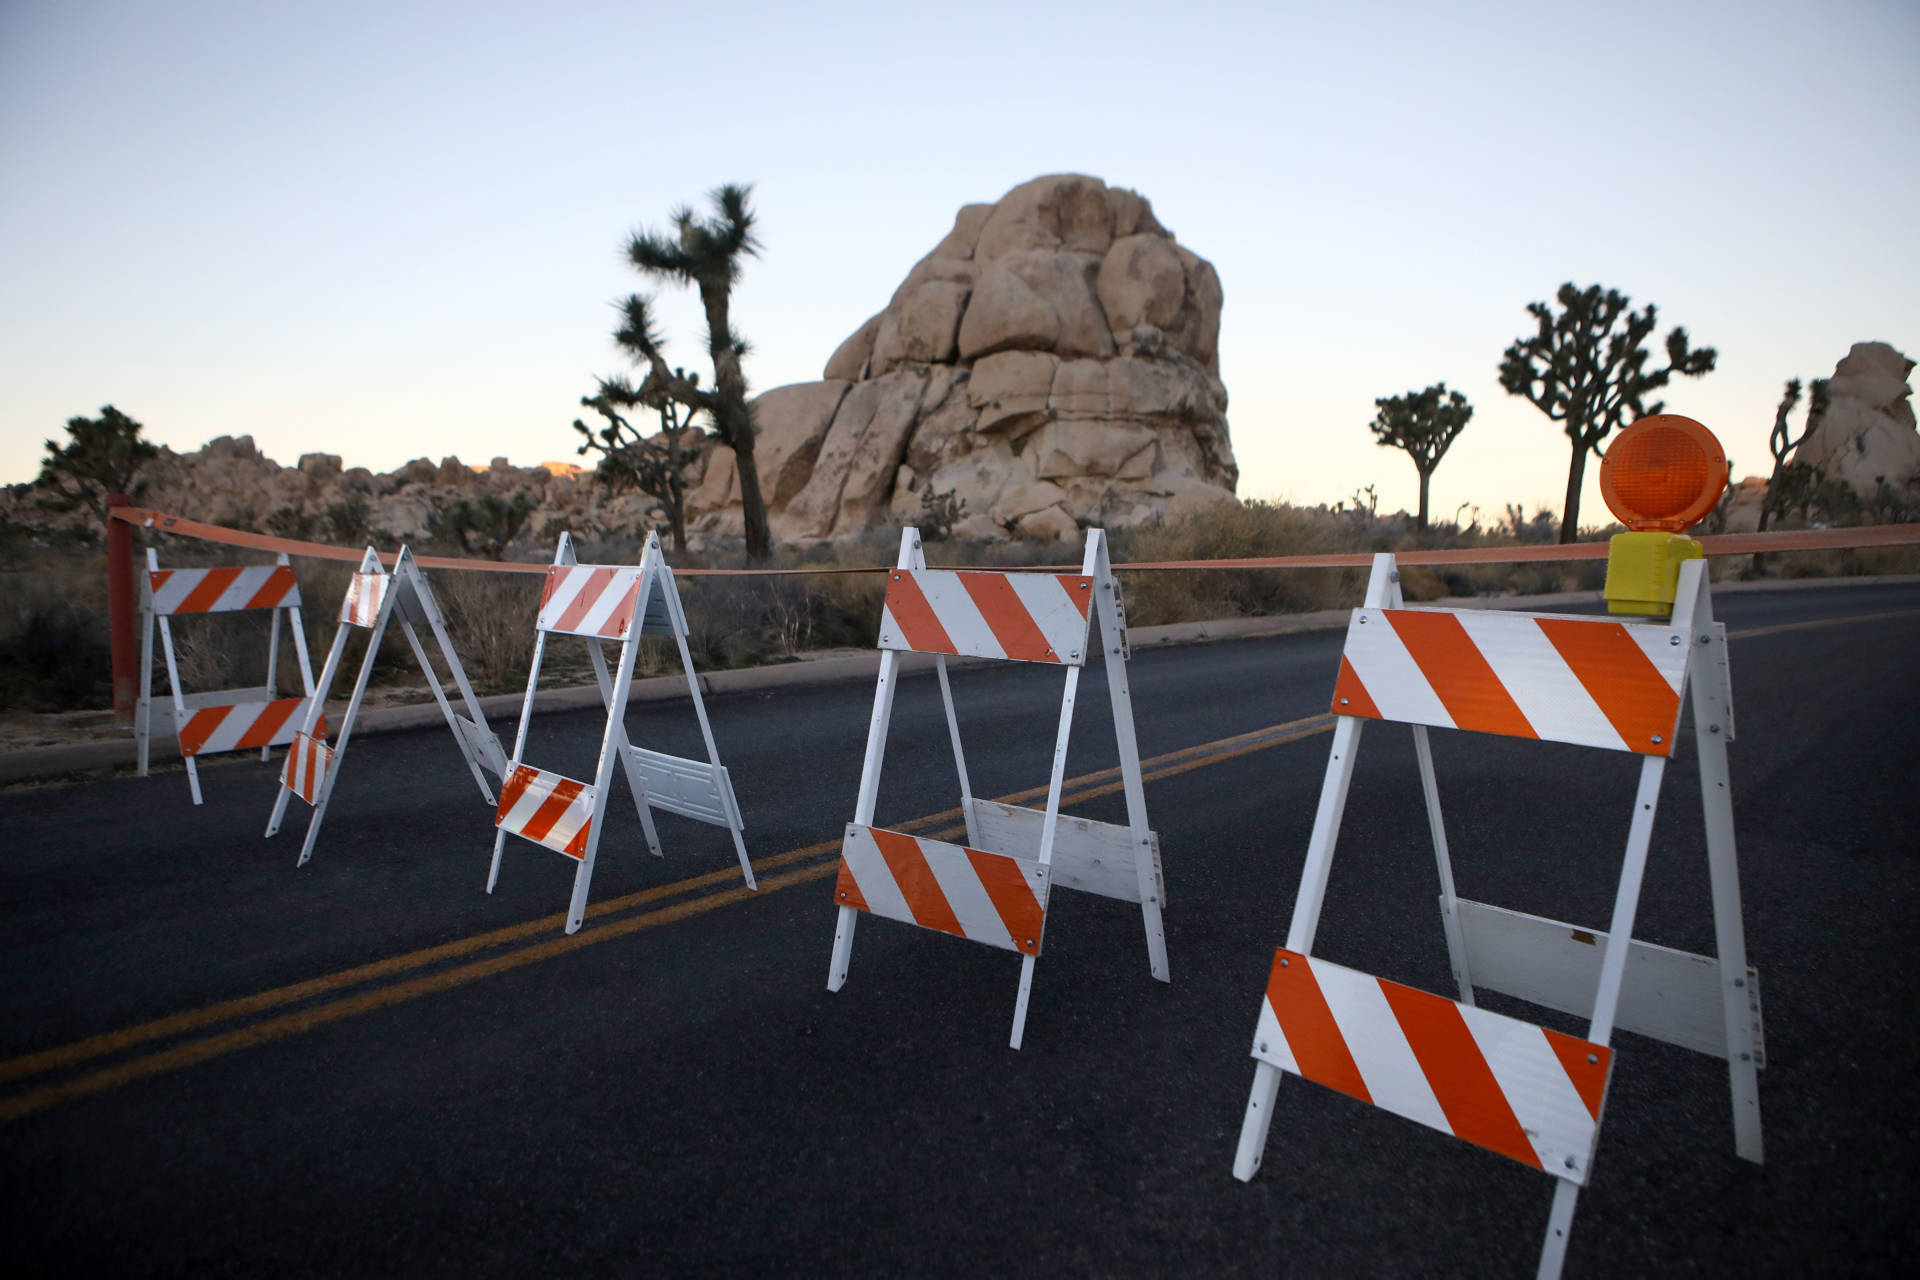 Barricades block a closed campground at Joshua Tree National Park on January 4, 2019. Campgrounds and some roads have been closed at the park due to safety concerns as the park is drastically understaffed during the partial government shutdown.  Mario Tama/Getty Images